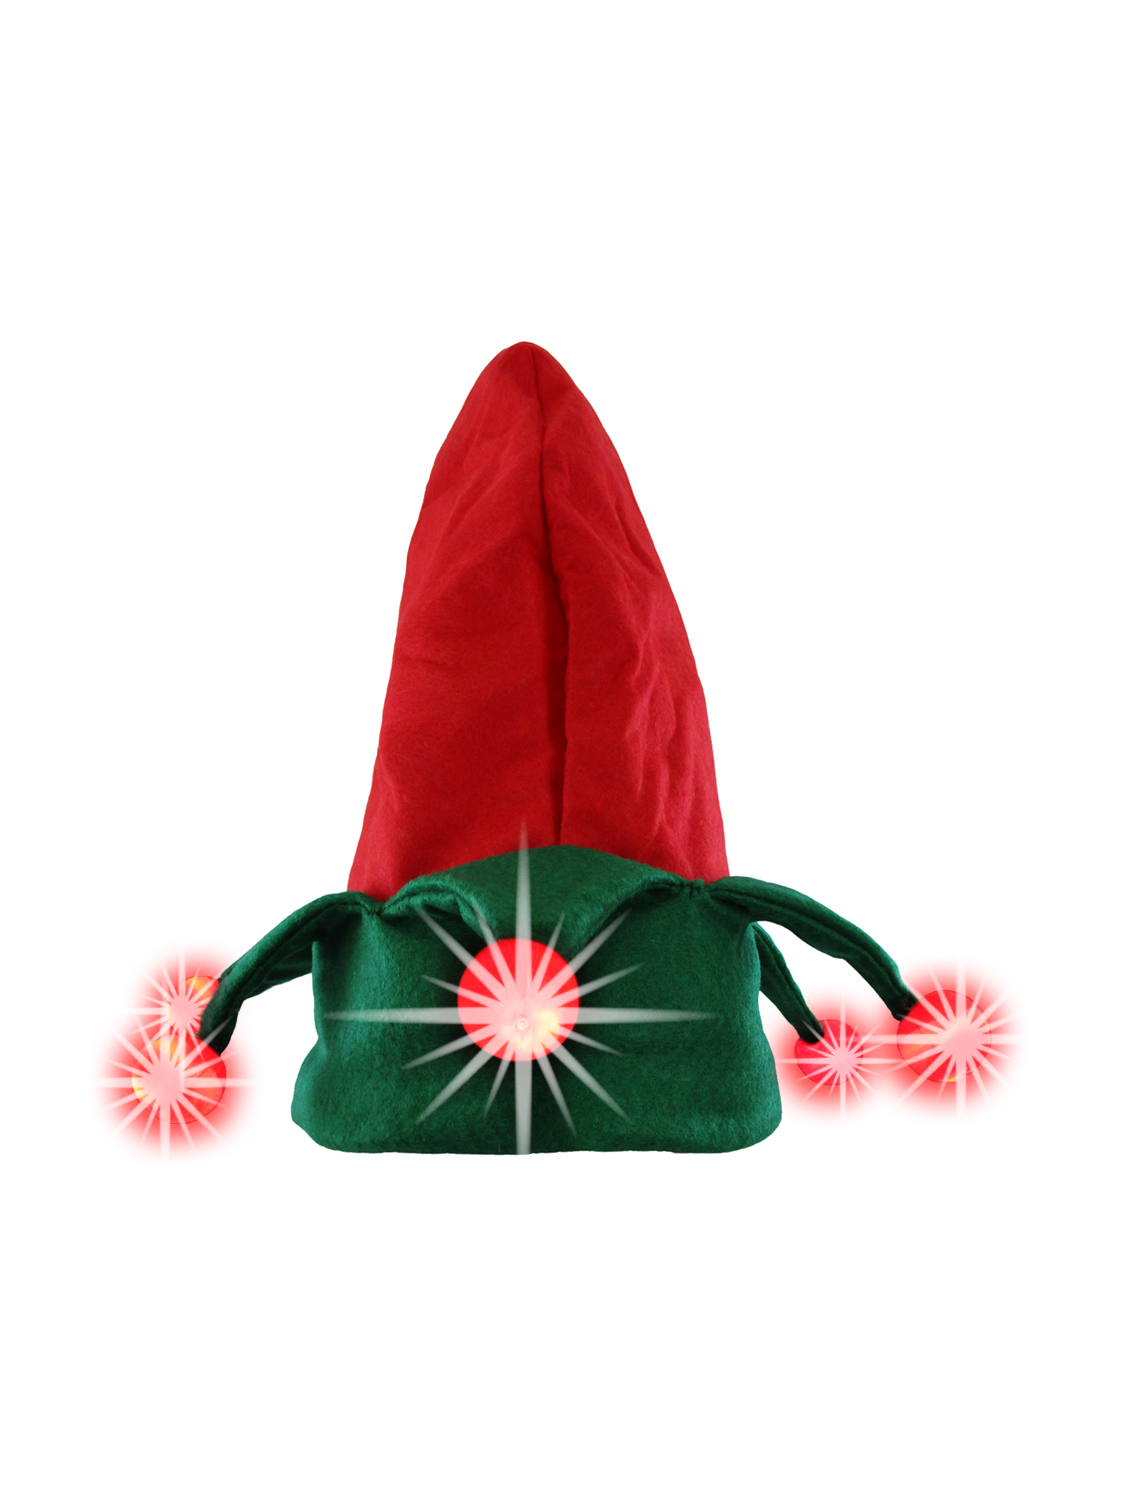 thumbnail 6 - Nicky-Bigs-Novelties-Light-Up-Elf-Hat-Costume-Accessory-Red-Green-One-Size